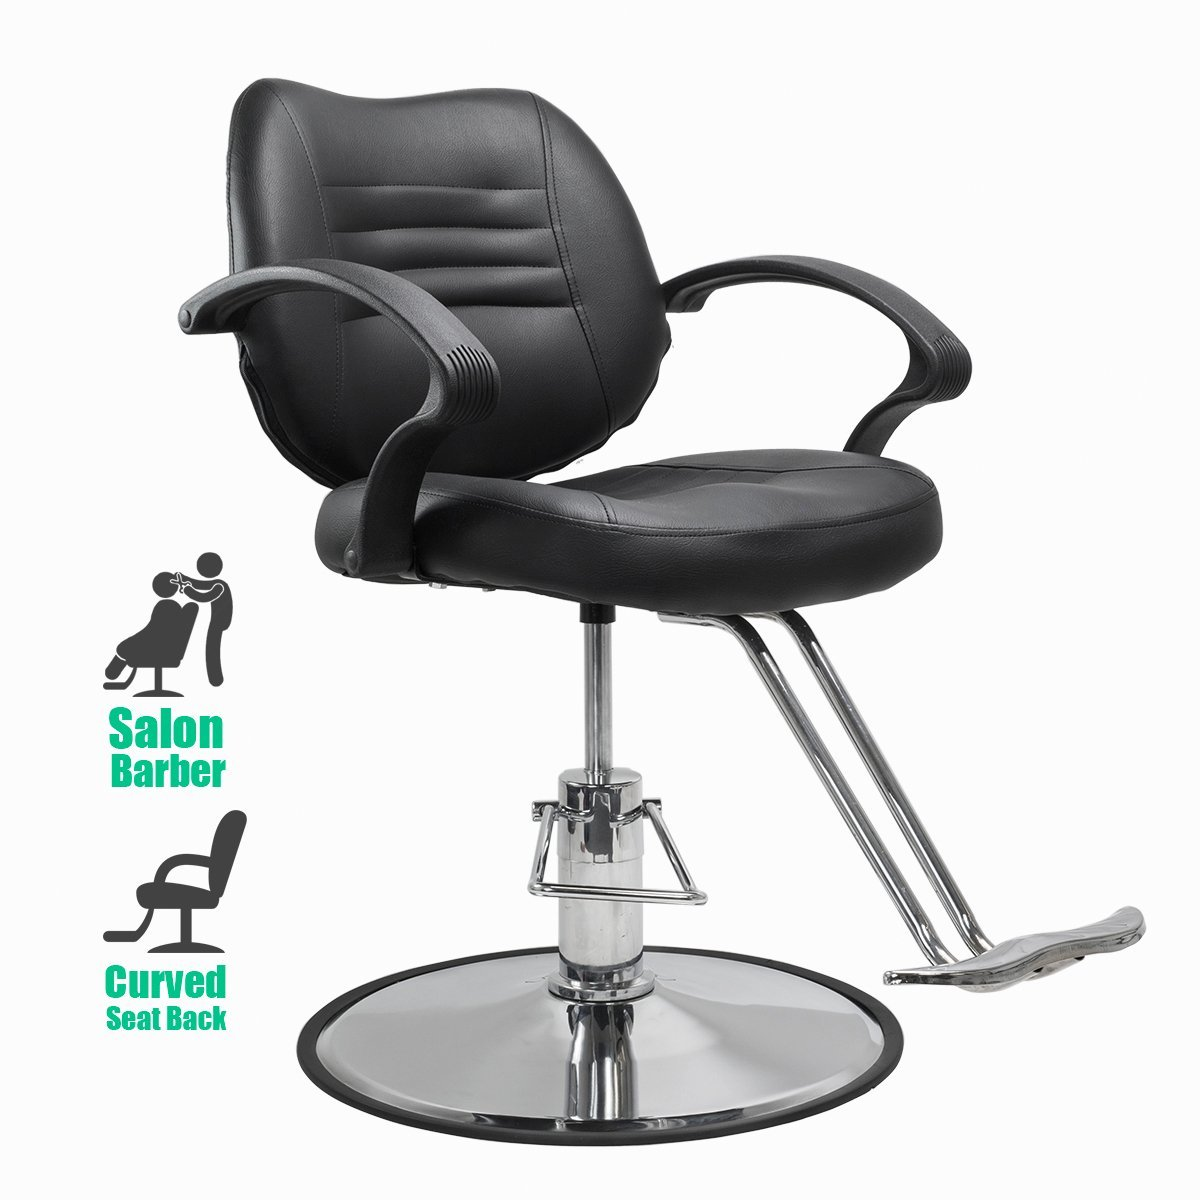 Cheap Makeup Chairs Best New Salon Chairs At Wholesale Buy New Chairs At The